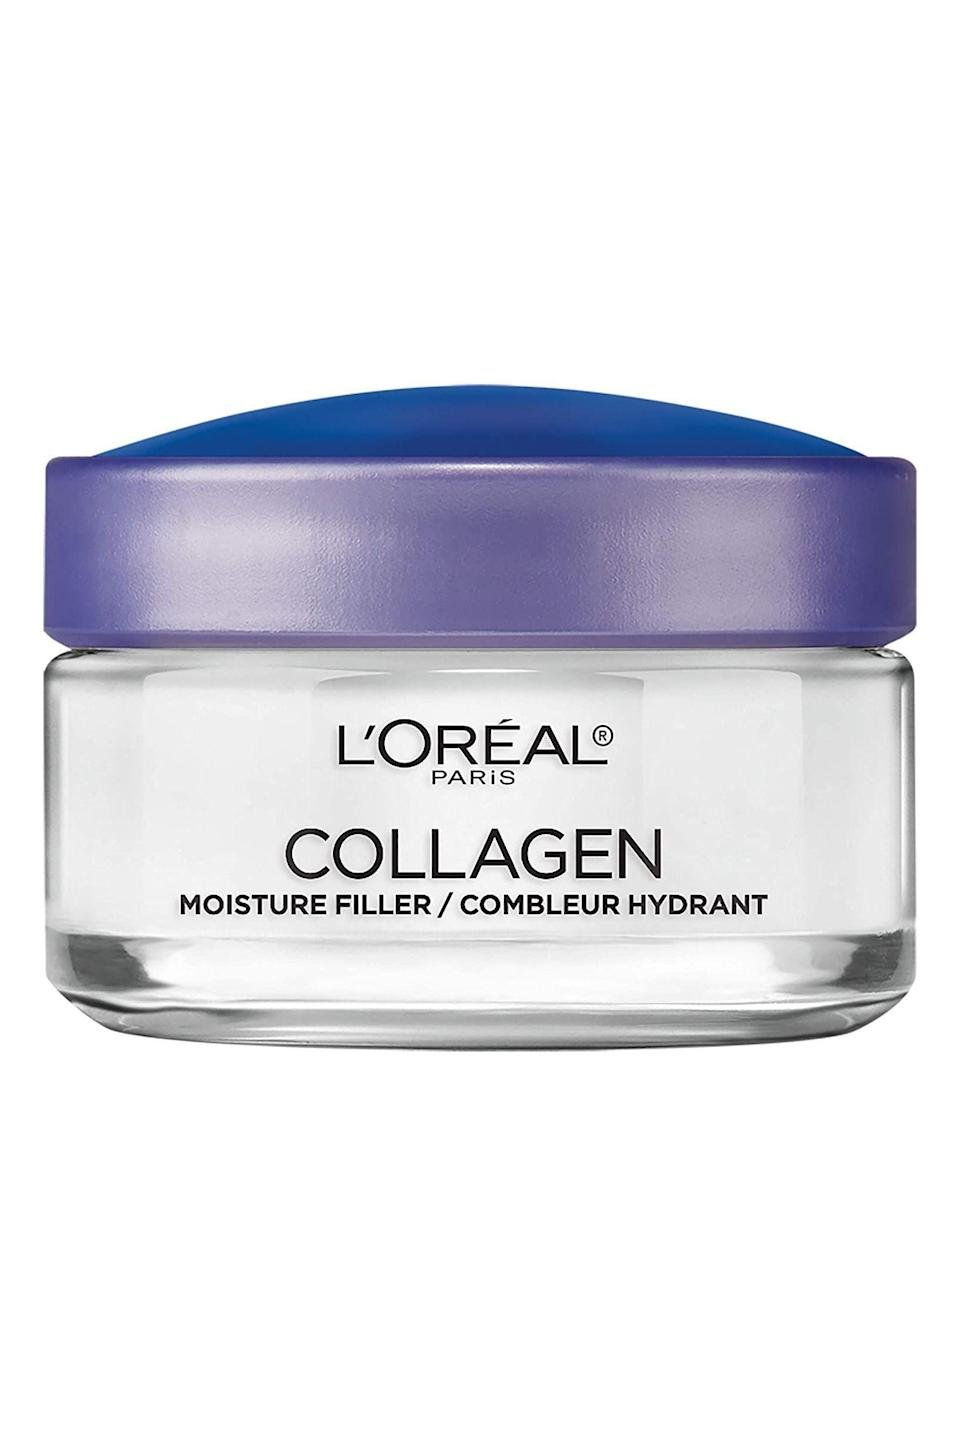 """<p><strong>L'Oreal Paris</strong></p><p>amazon.com</p><p><strong>$8.98</strong></p><p><a href=""""https://www.amazon.com/dp/B002JDUMFO?tag=syn-yahoo-20&ascsubtag=%5Bartid%7C10058.g.34015100%5Bsrc%7Cyahoo-us"""" rel=""""nofollow noopener"""" target=""""_blank"""" data-ylk=""""slk:SHOP IT"""" class=""""link rapid-noclick-resp"""">SHOP IT</a></p><p>If you've thought about reaching for injectable fillers to regain your youth, save some money and pick up this cream instead. It's infused with collagen that plumps up the skin, and hydrates like no other.</p>"""